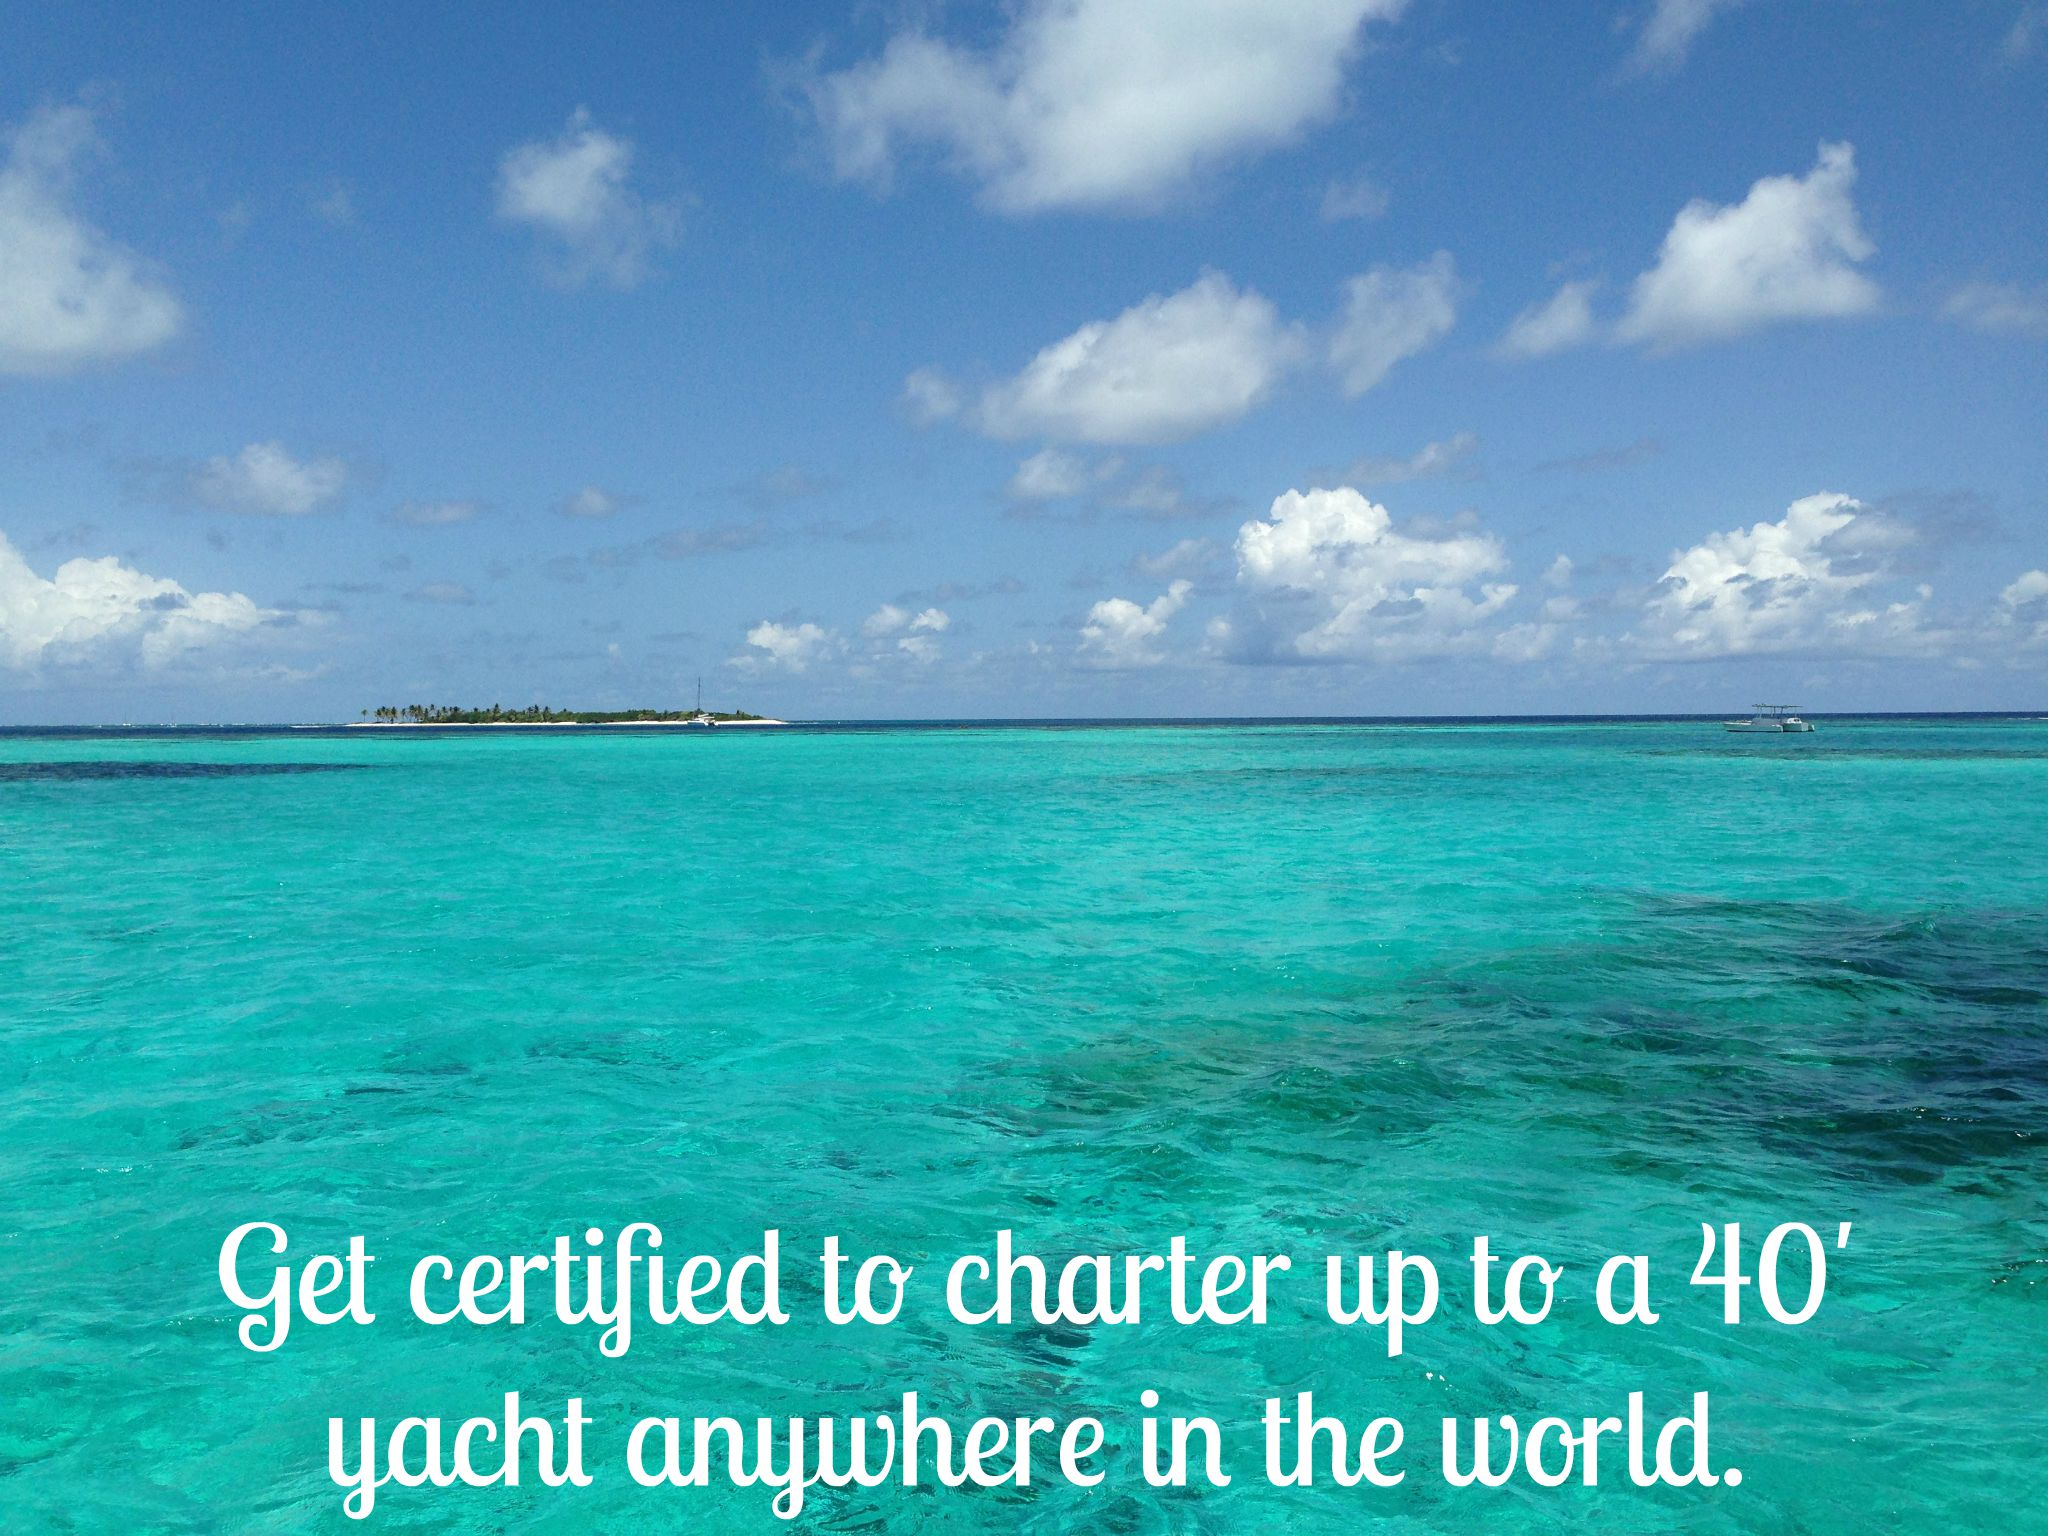 Get certified to charter up to a 40' yacht anywhere in the world - Wanderalot